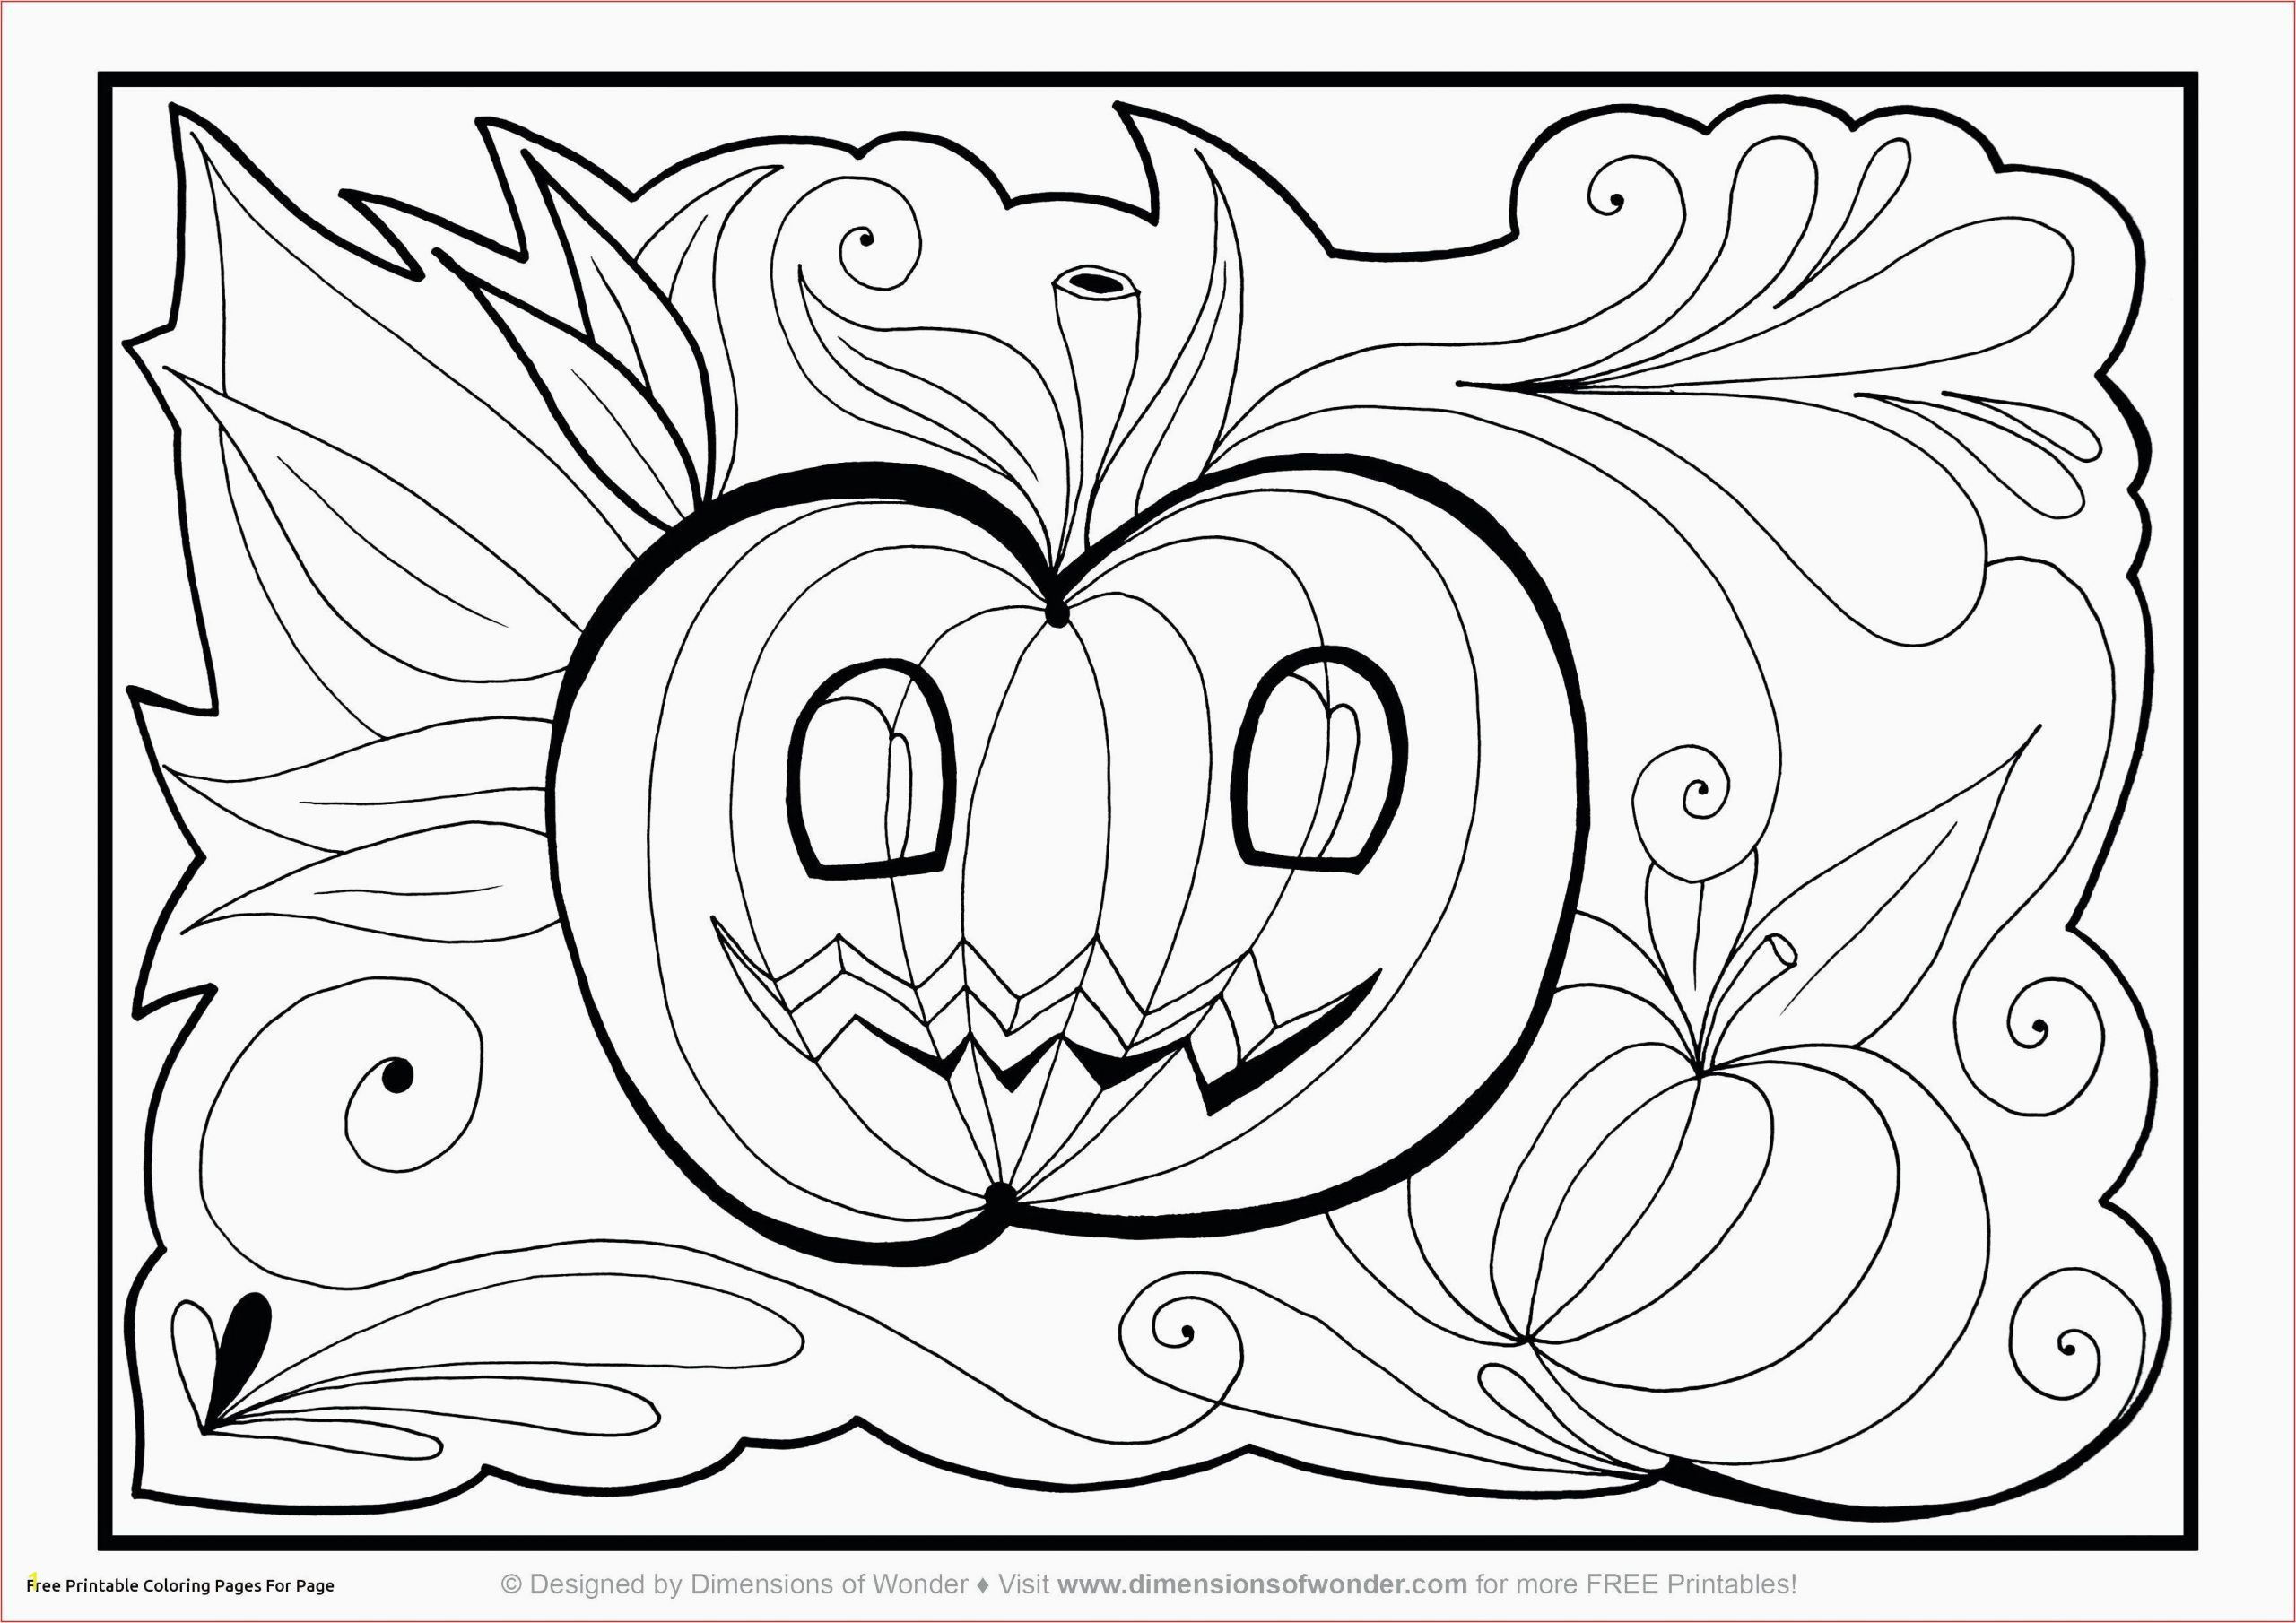 Color by Number Halloween Coloring Sheets Color by Number Coloring Books Unique Coloring Pages for